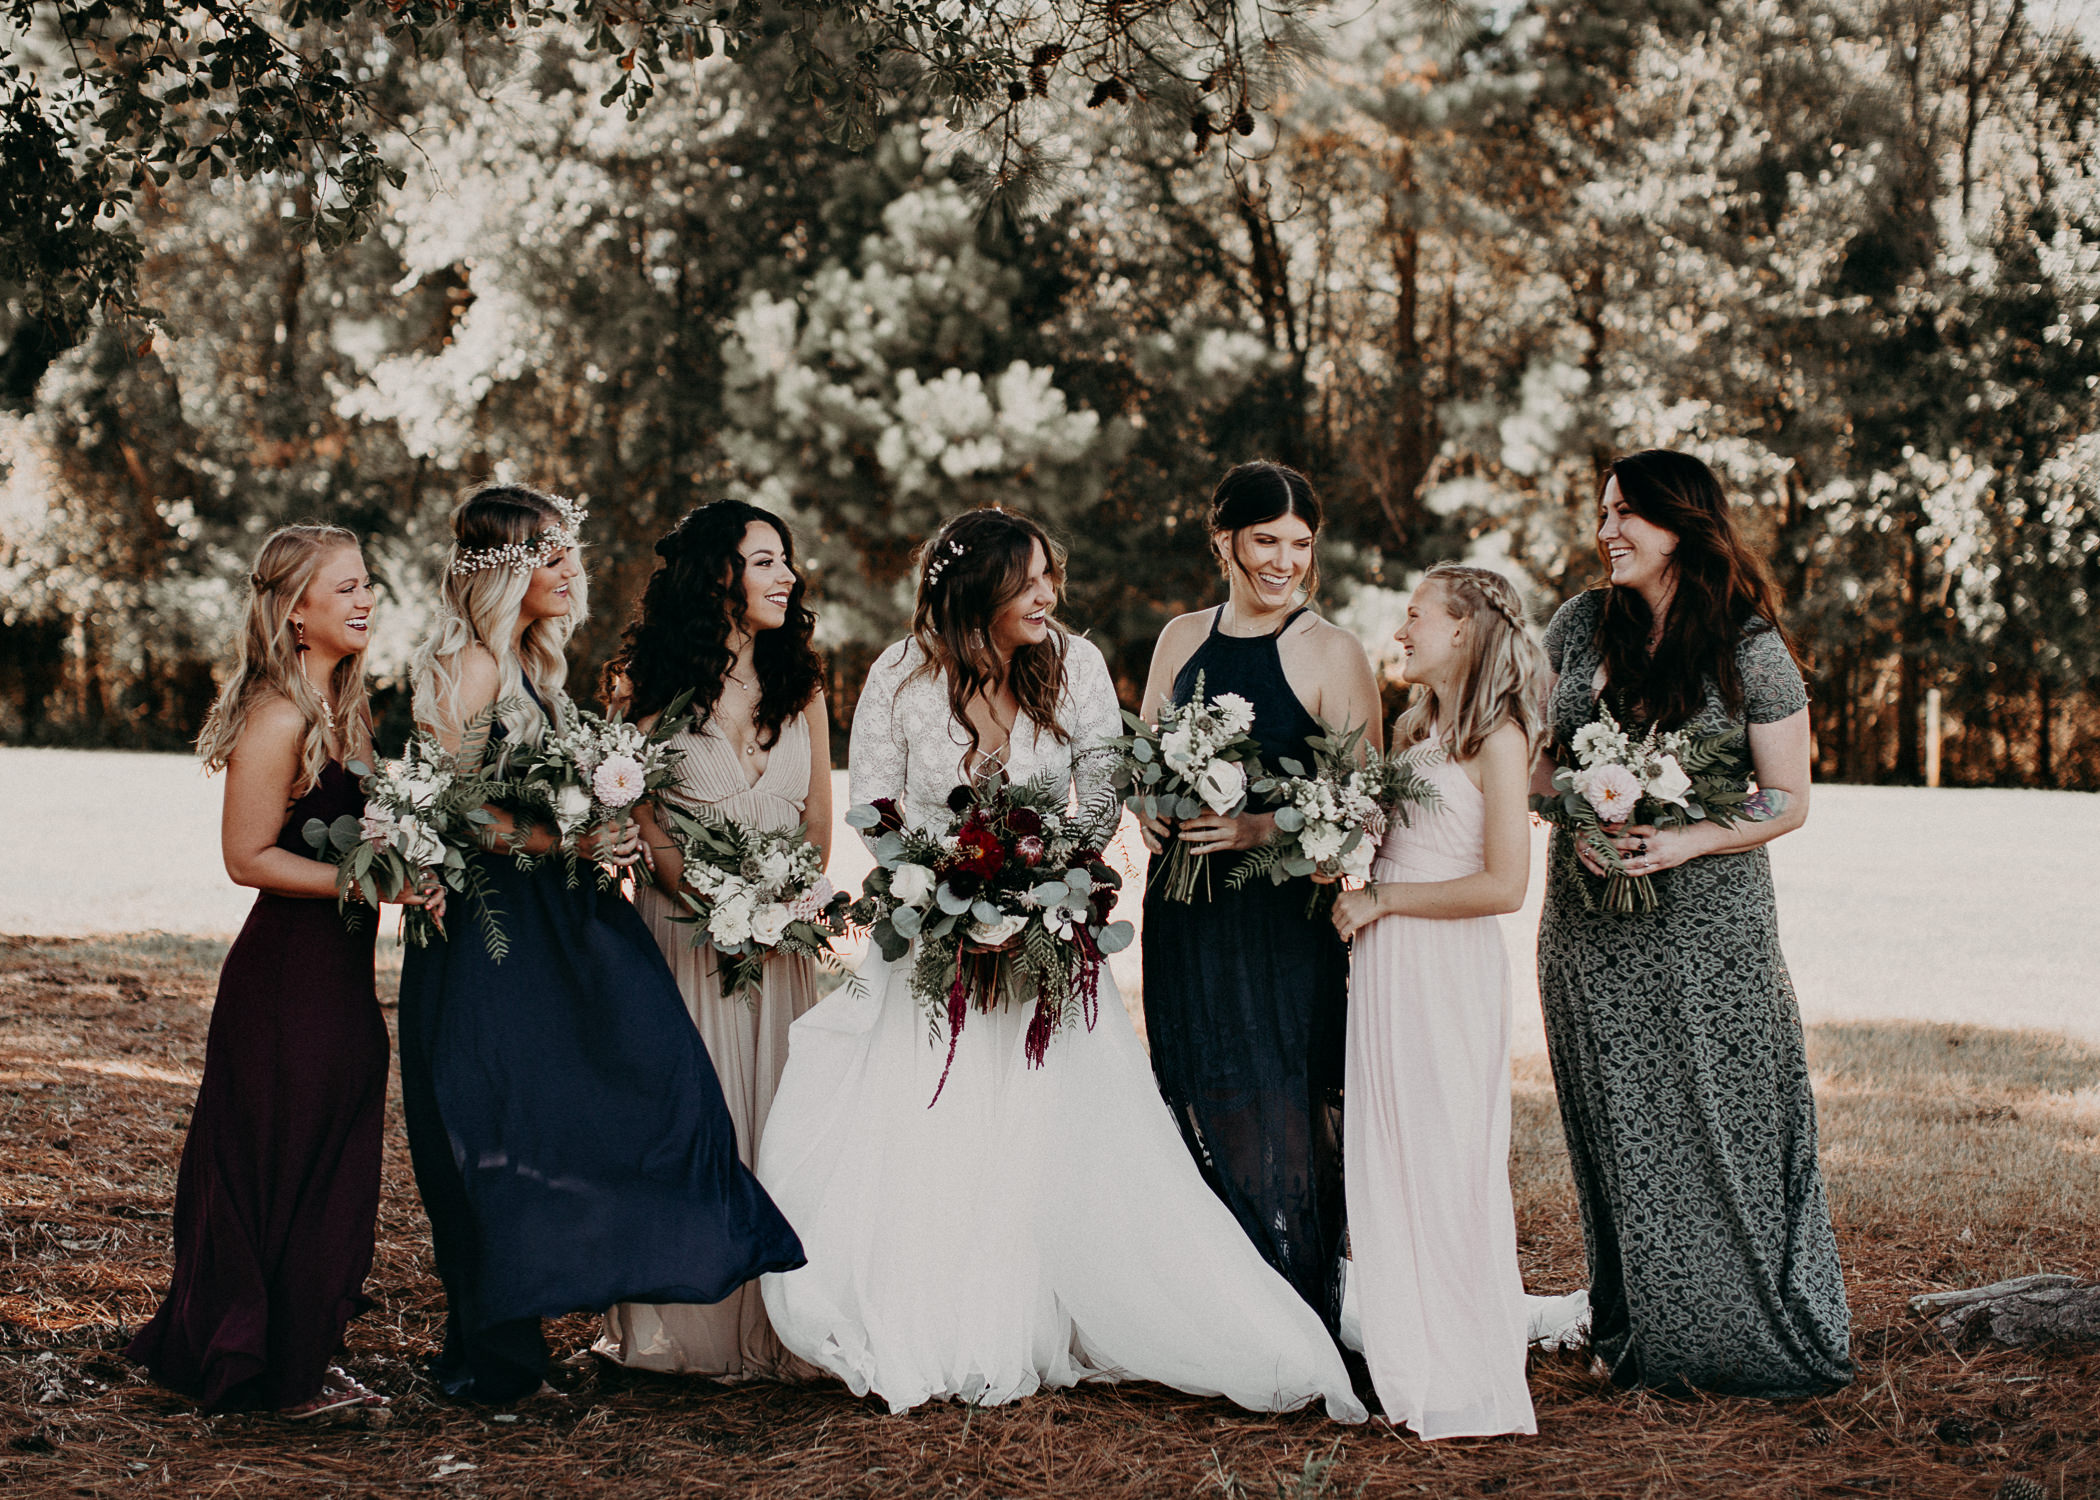 84 - Wedding bride and bridesmaids portraits : Atlanta wedding photographer .jpg